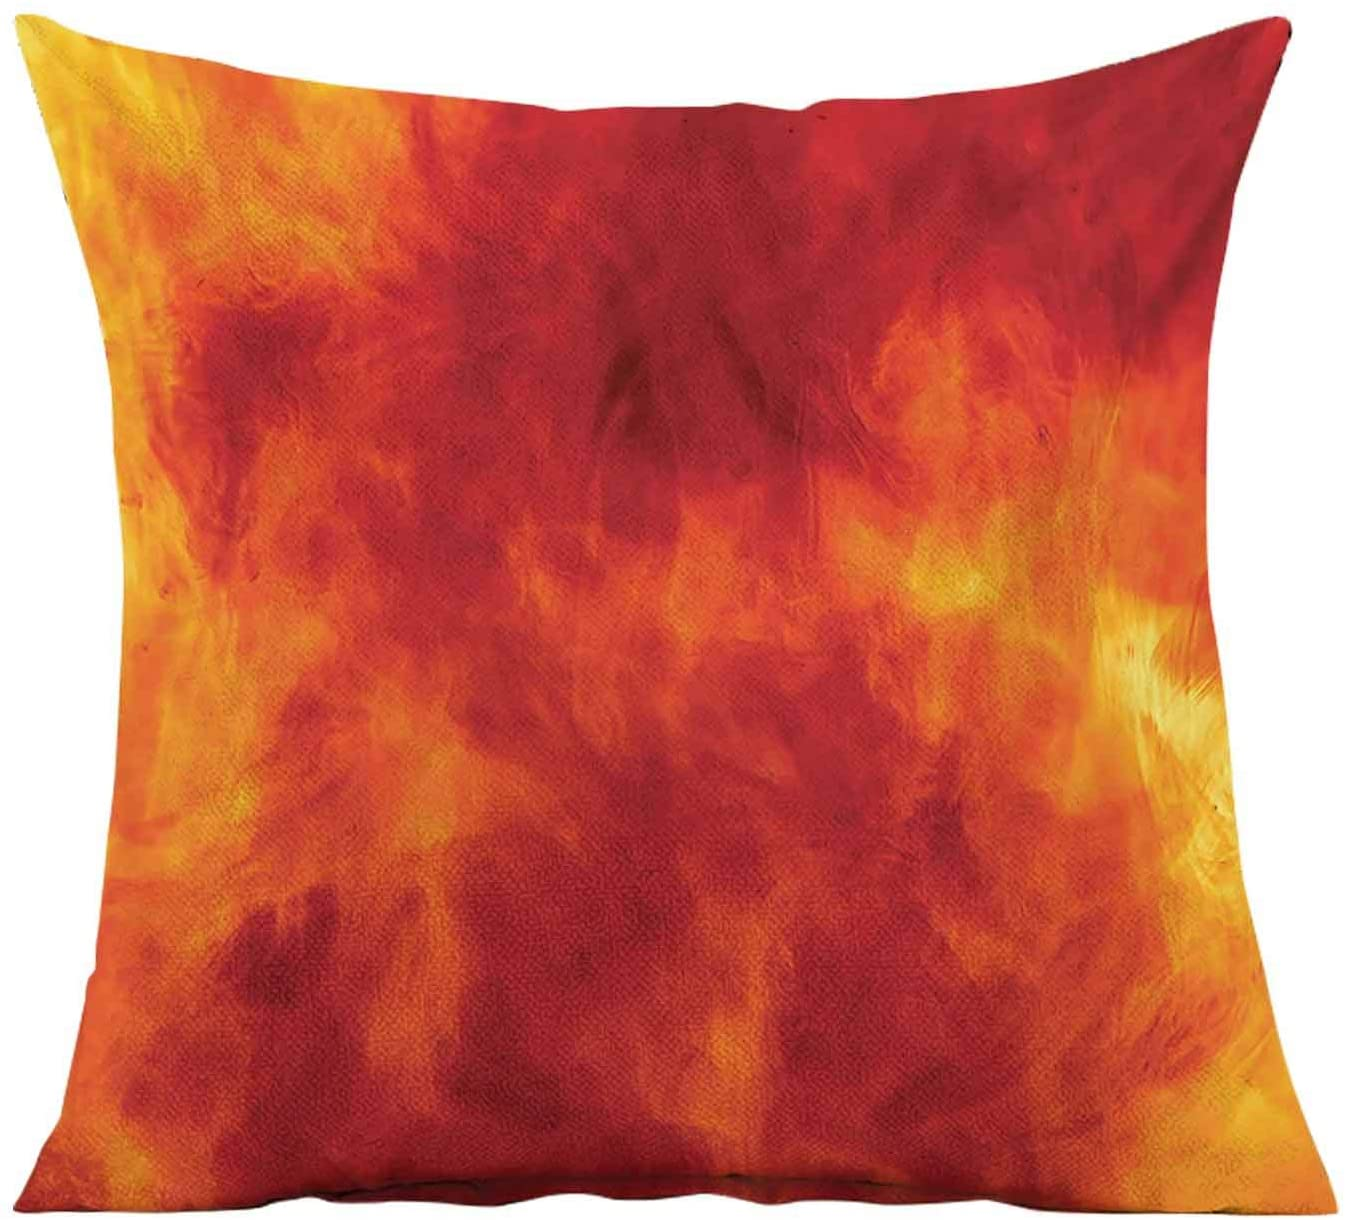 Orange Decorative Throw Pillow Cover,Graphic of Fire Vibrant Flames Illustration Heat Burning Theme Design Art Print Square Pillow Case for Patio Couch Sofa Home Car Couch,18x18 Inches,Orange Yellow